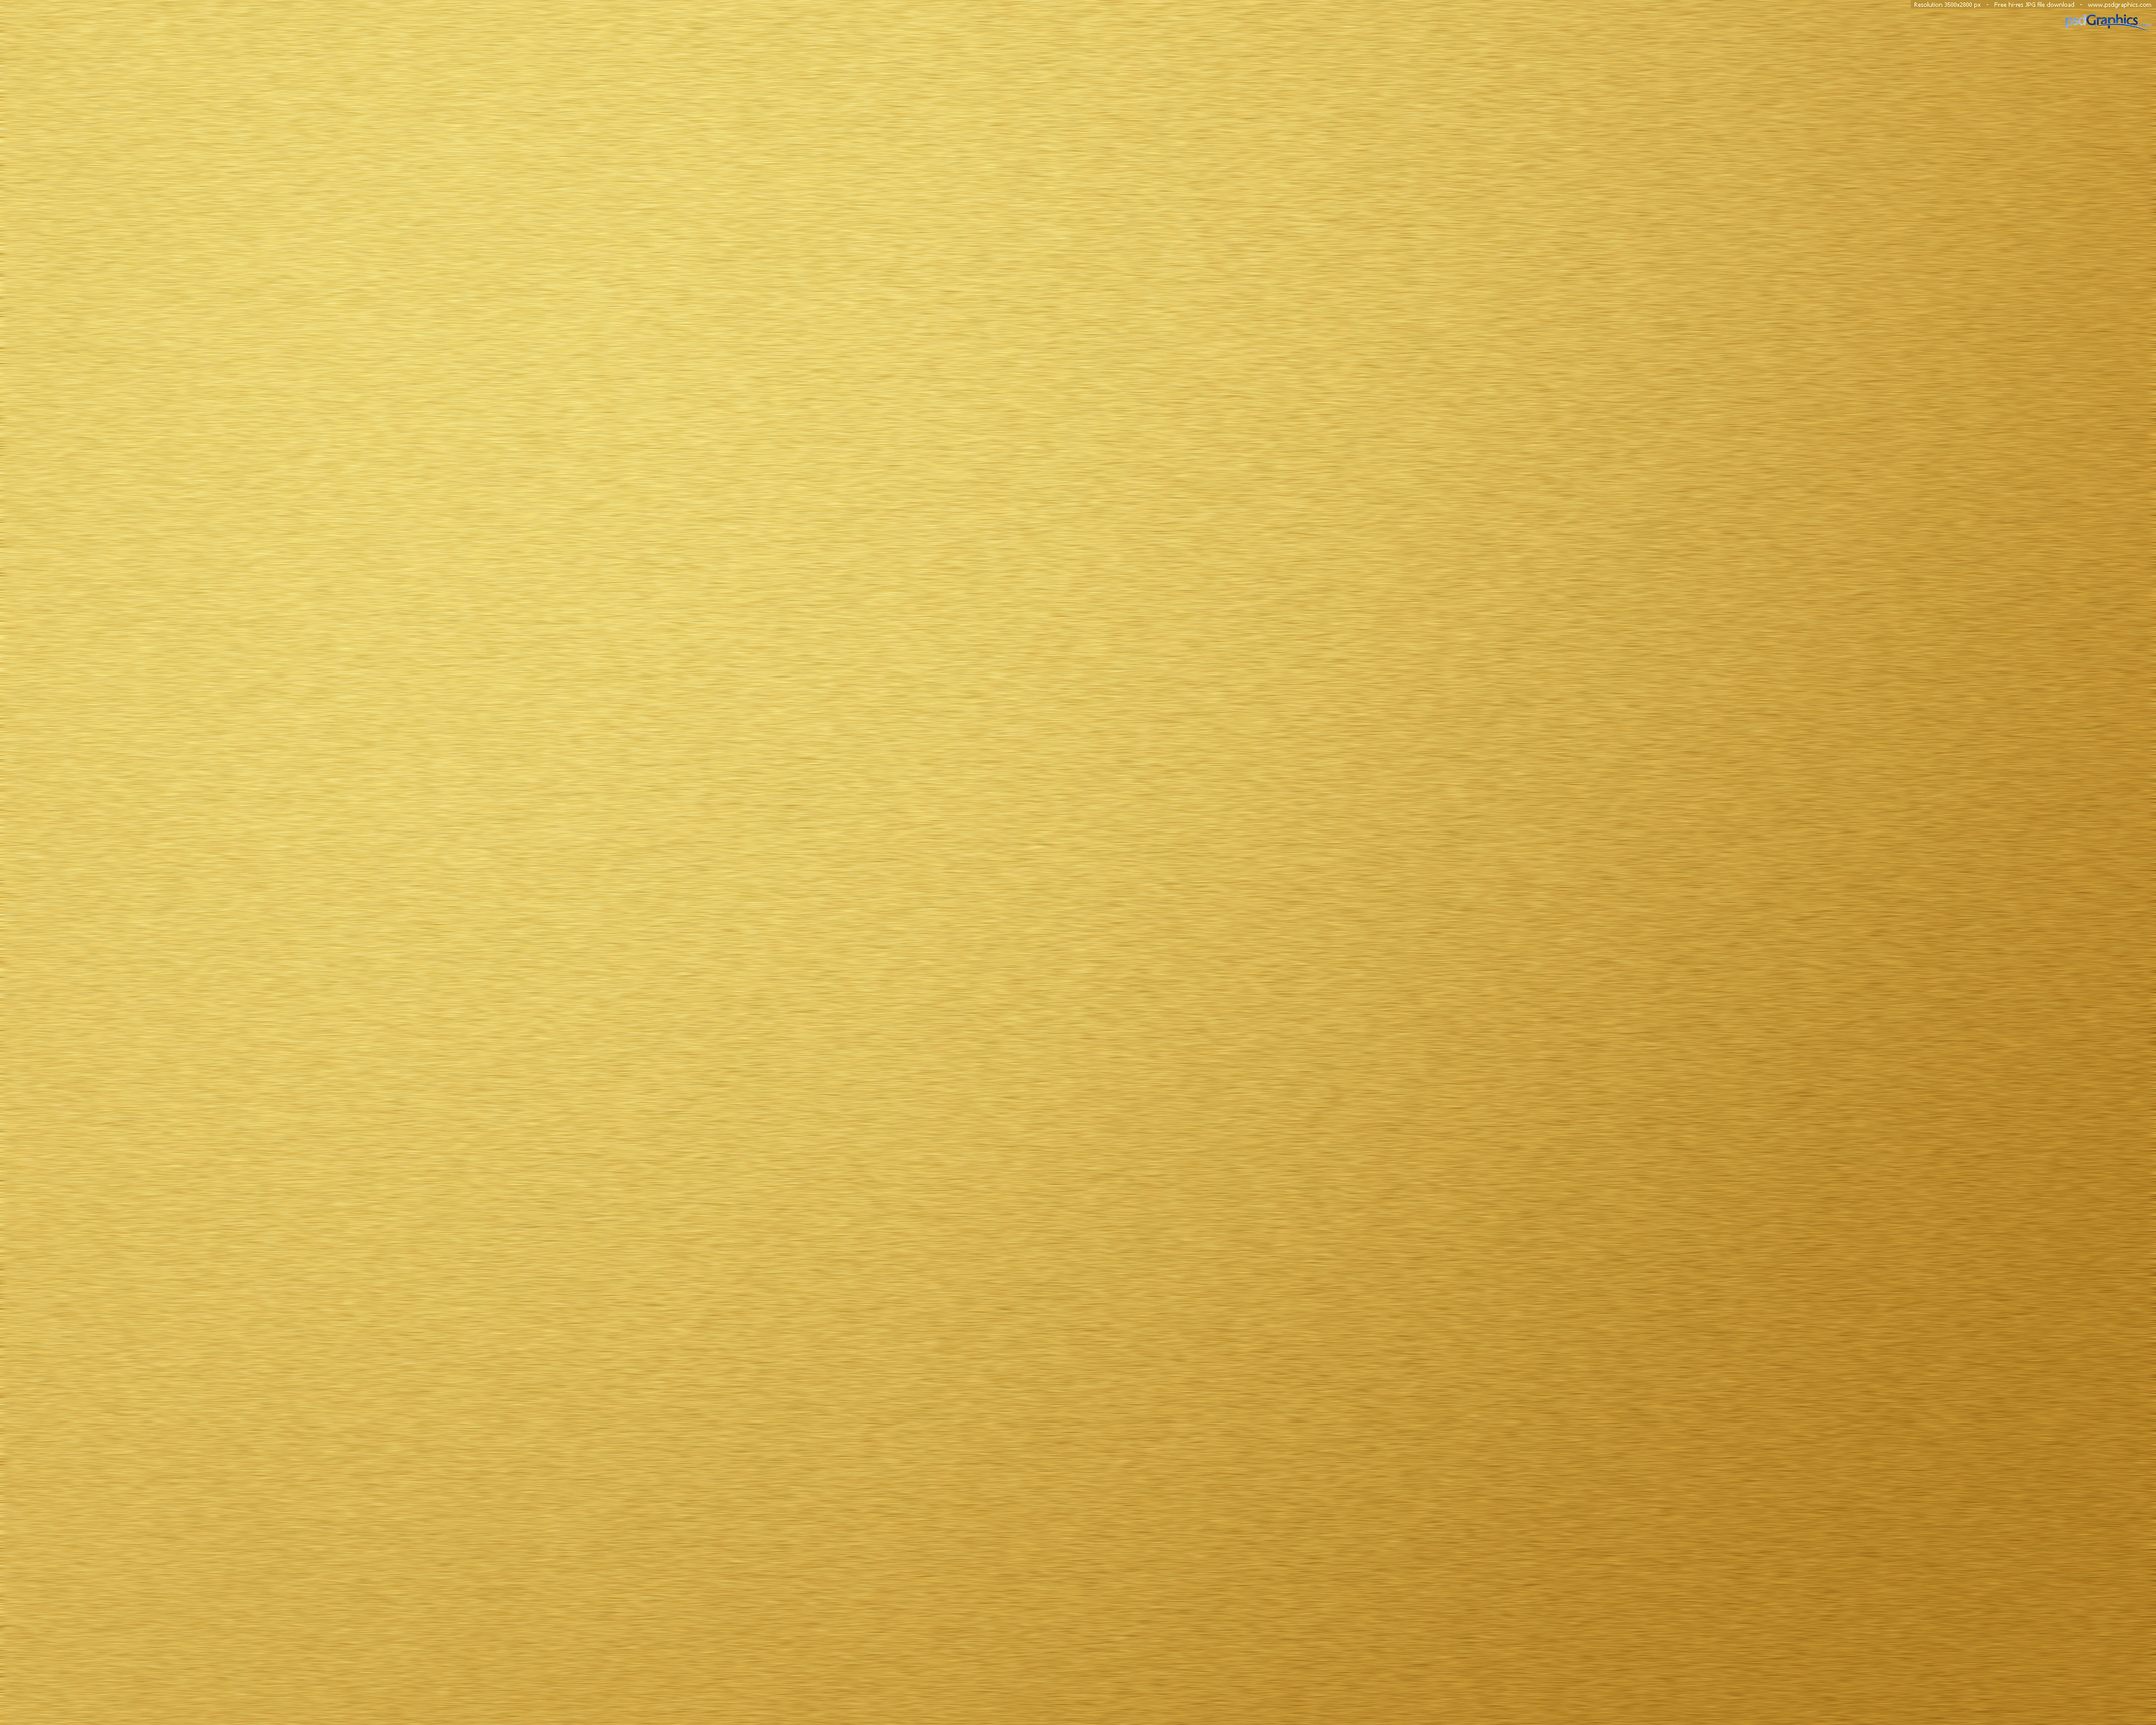 brushed gold metal texture background #14071